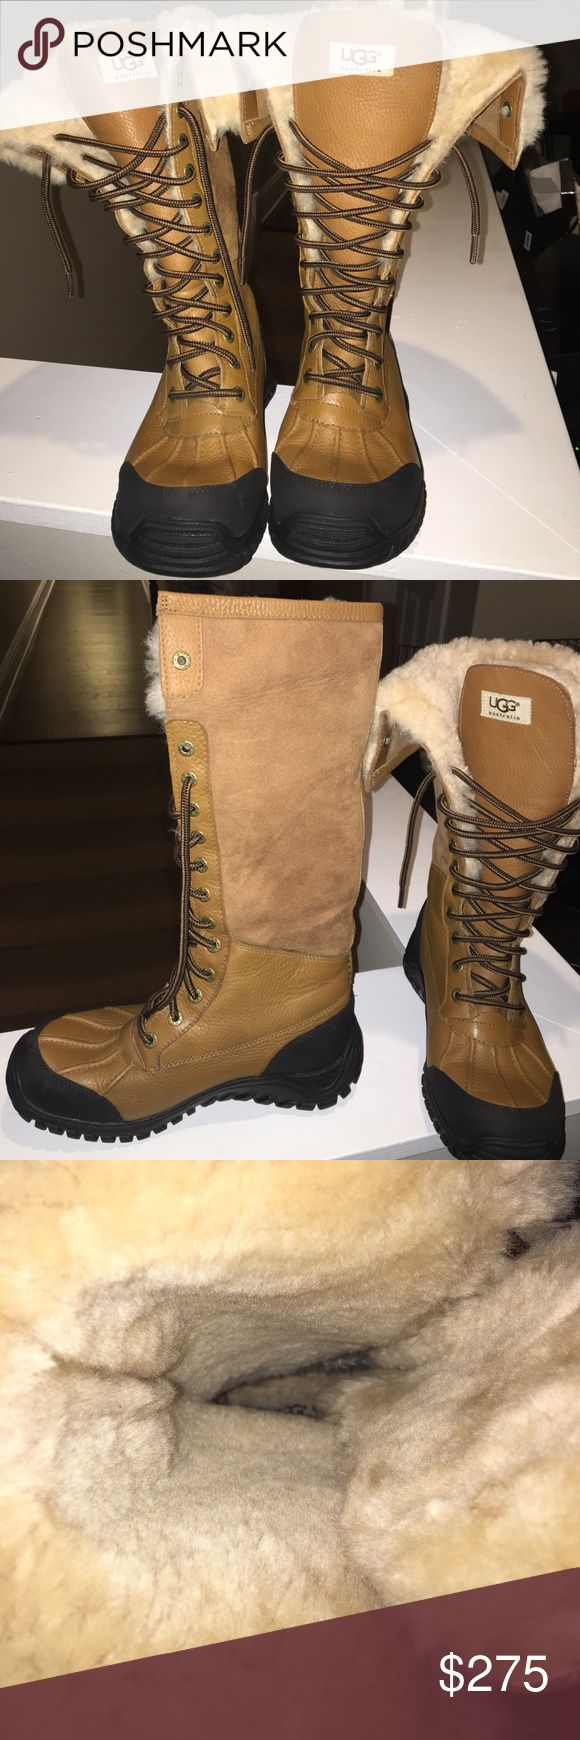 UGG ADIRONDACK TALL BOOTS Worn twice; boots are in like new condition. No original box. Very fluffy! See comments.....Size fits a wide 8.5 without any socks! UGG Shoes Winter & Rain Boots